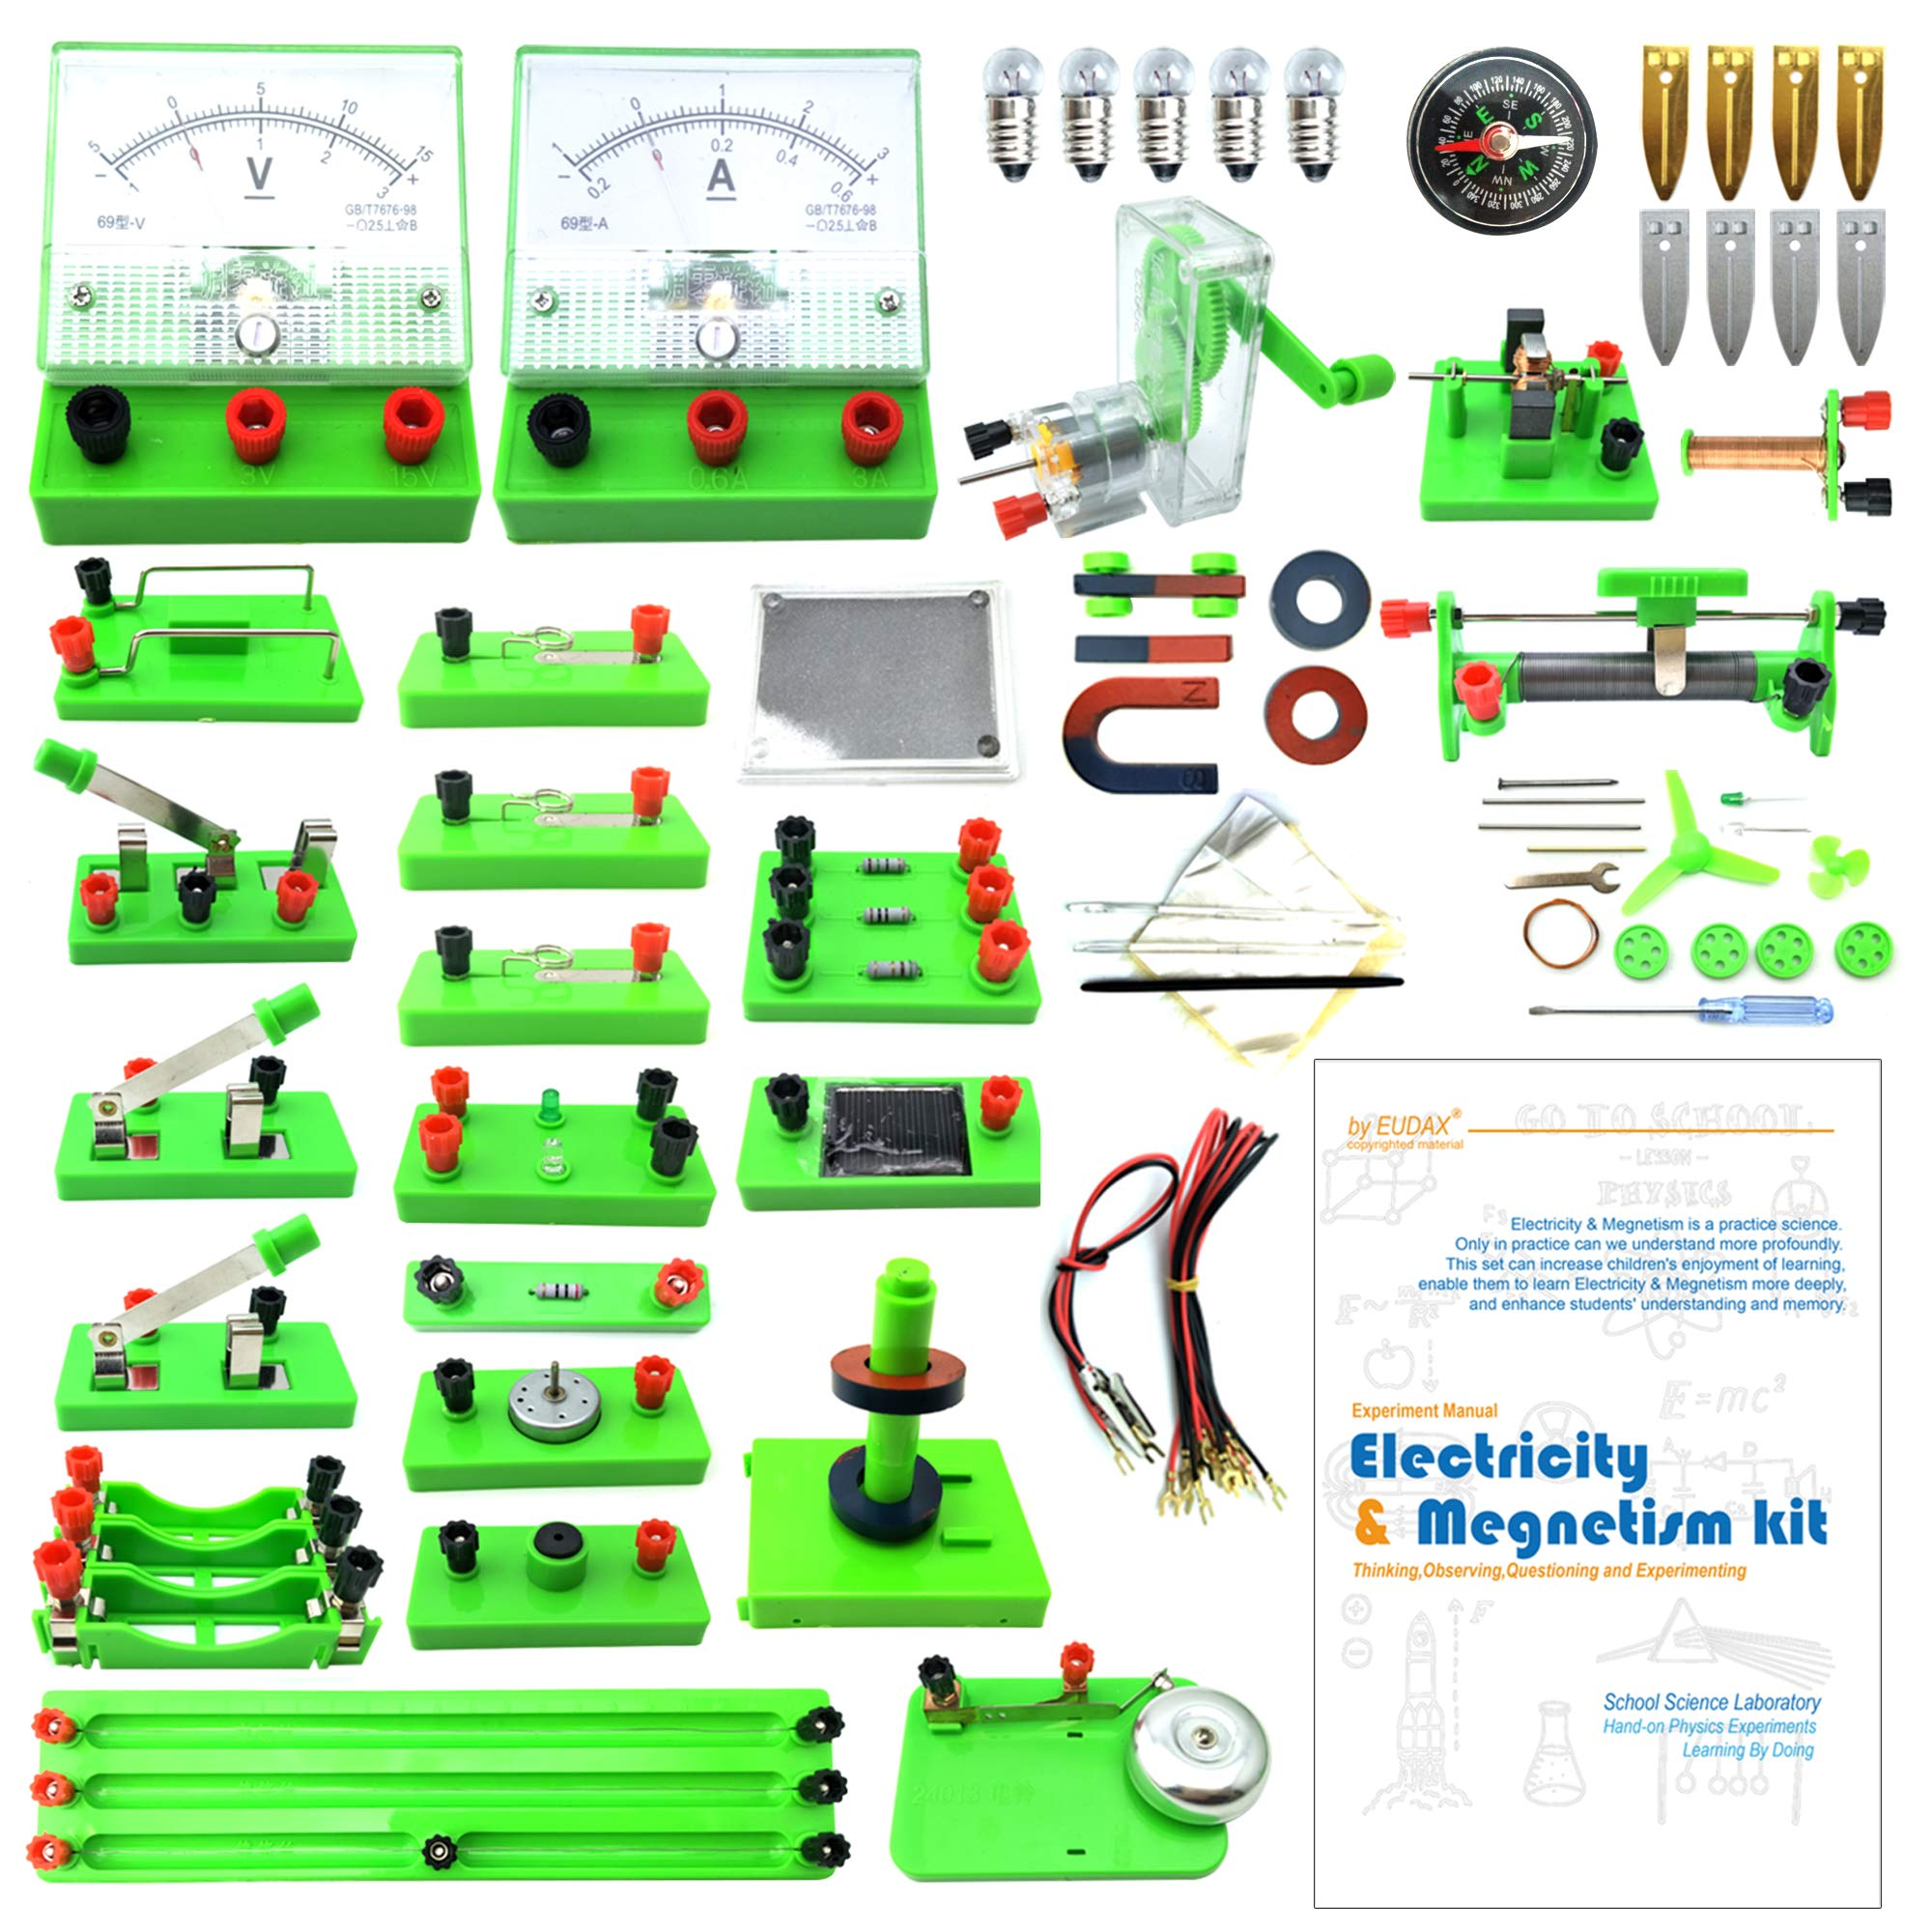 EUDAX School Physics Labs Basic Electricity Discovery Circuit and Magnetism Experiment kits for Kids Junior Senior High School Students Electromagnetism Elementary Electronics by EUDAX